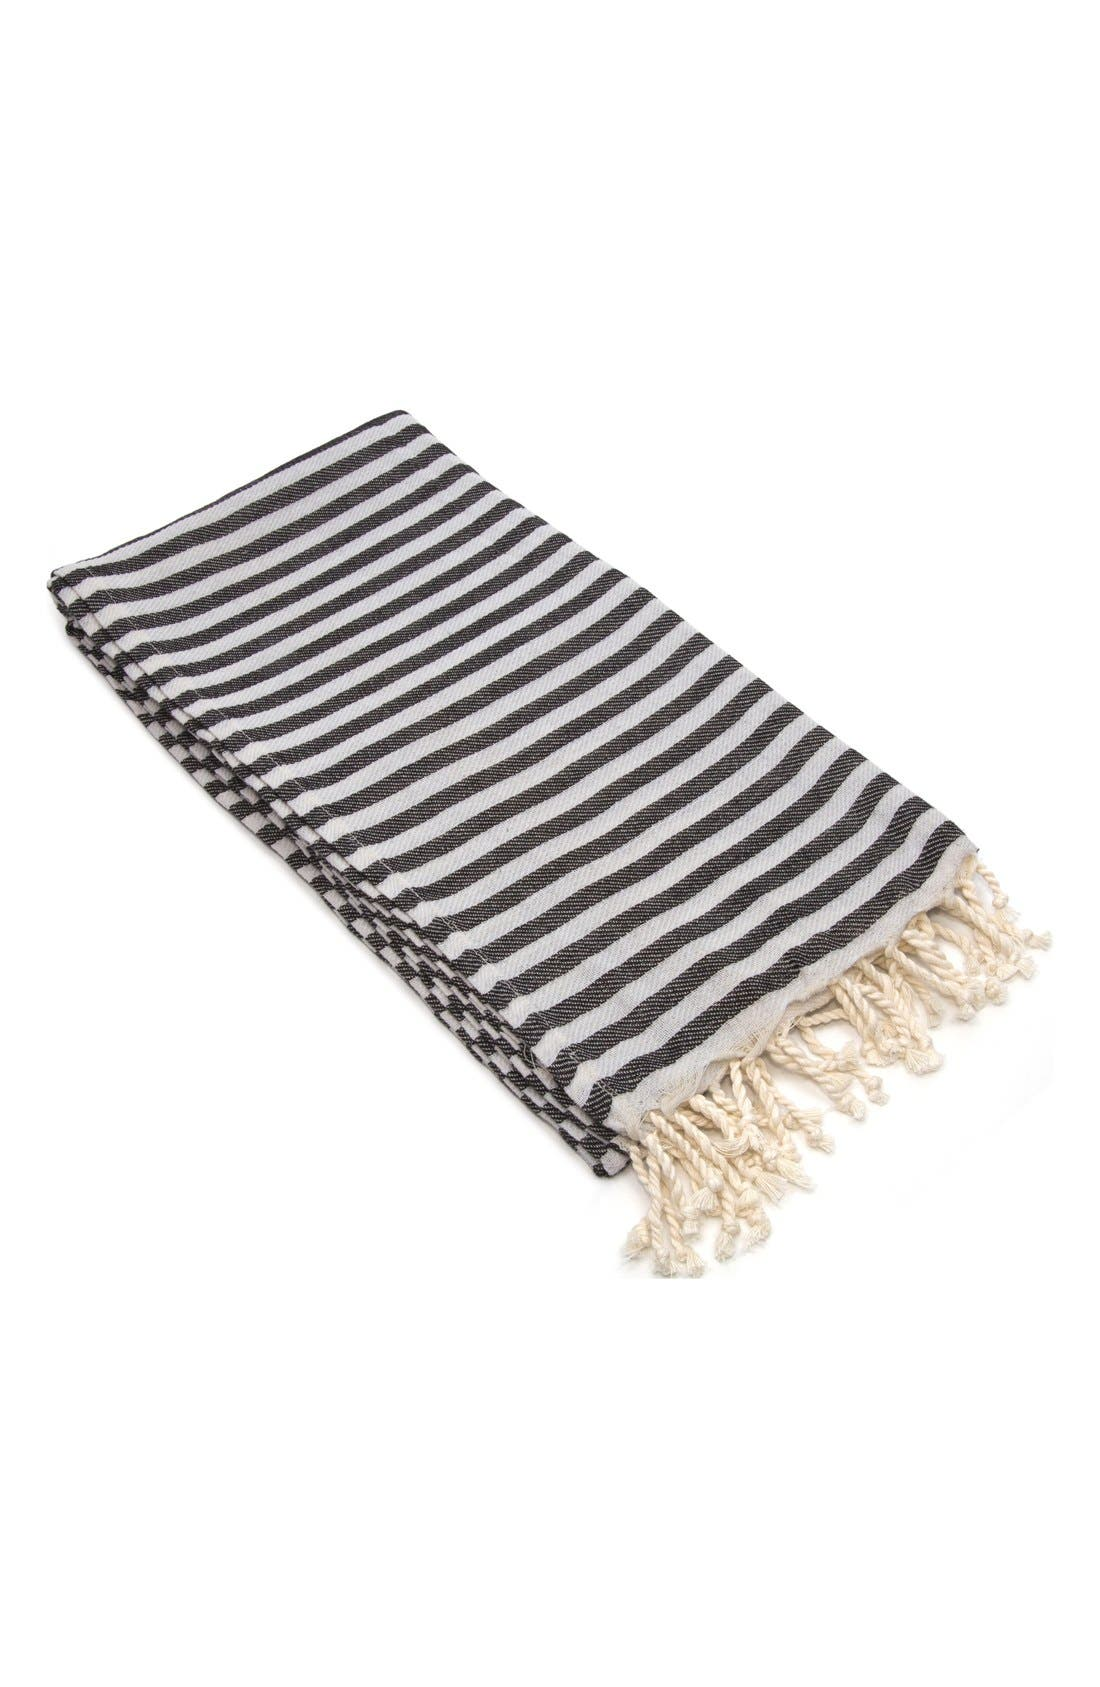 Linum Home Textiles 'Fun in the Sun' Turkish Pestemal Towel